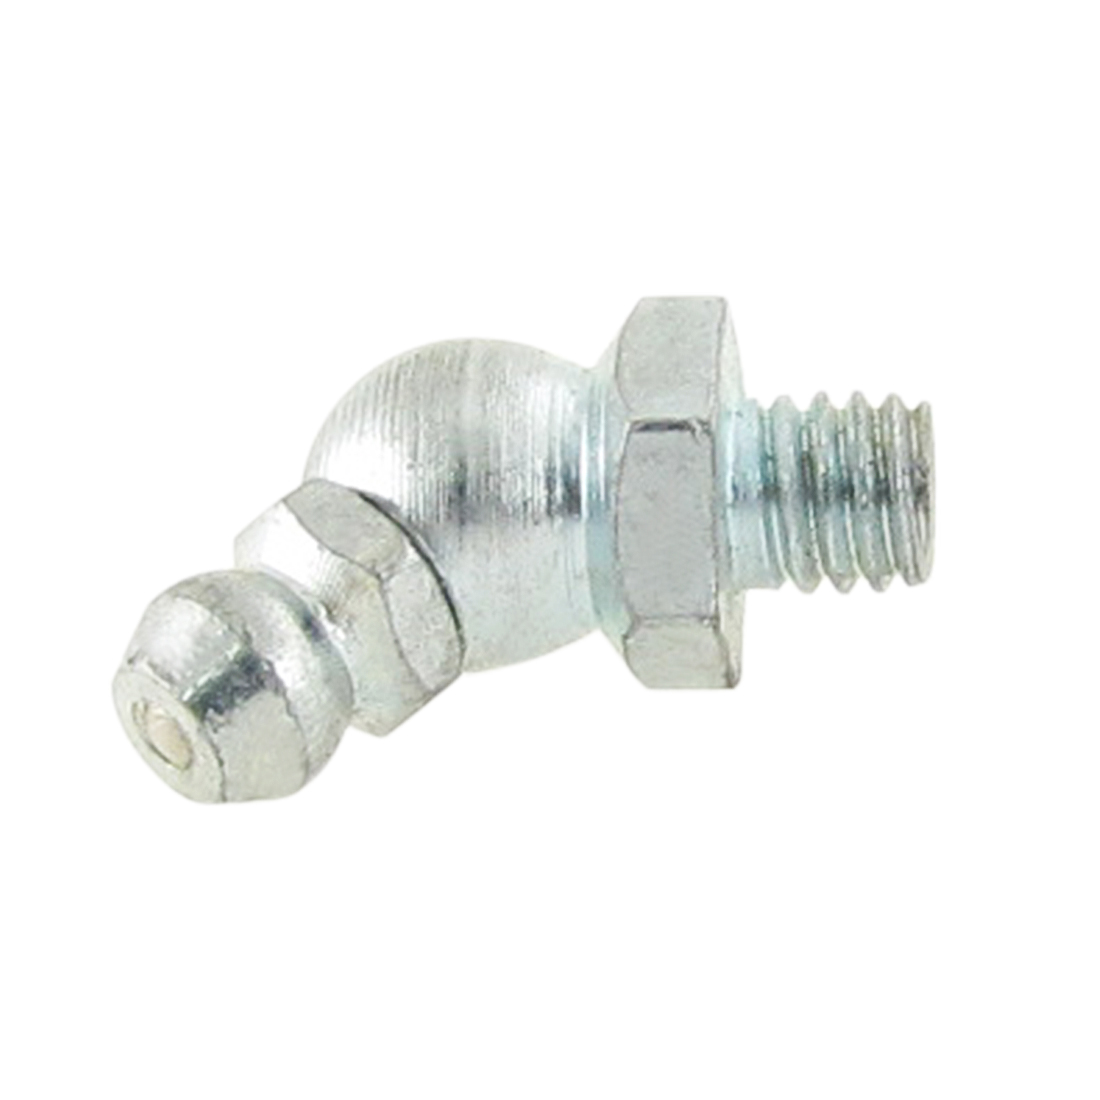 Metal 45 Degree Angle Type 6mm M6 Grease Nipple Zerk Fitting